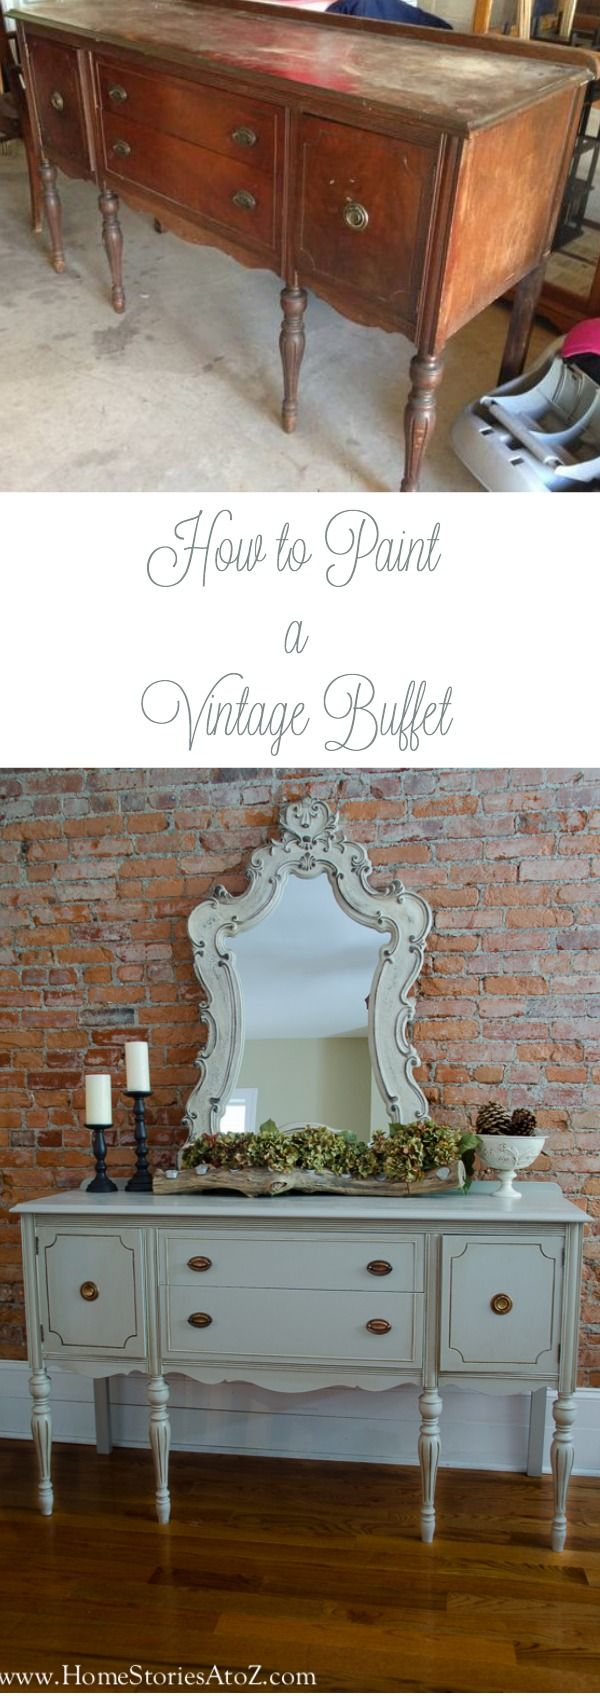 Painted buffet table furniture - How To Paint A Vintage Buffet